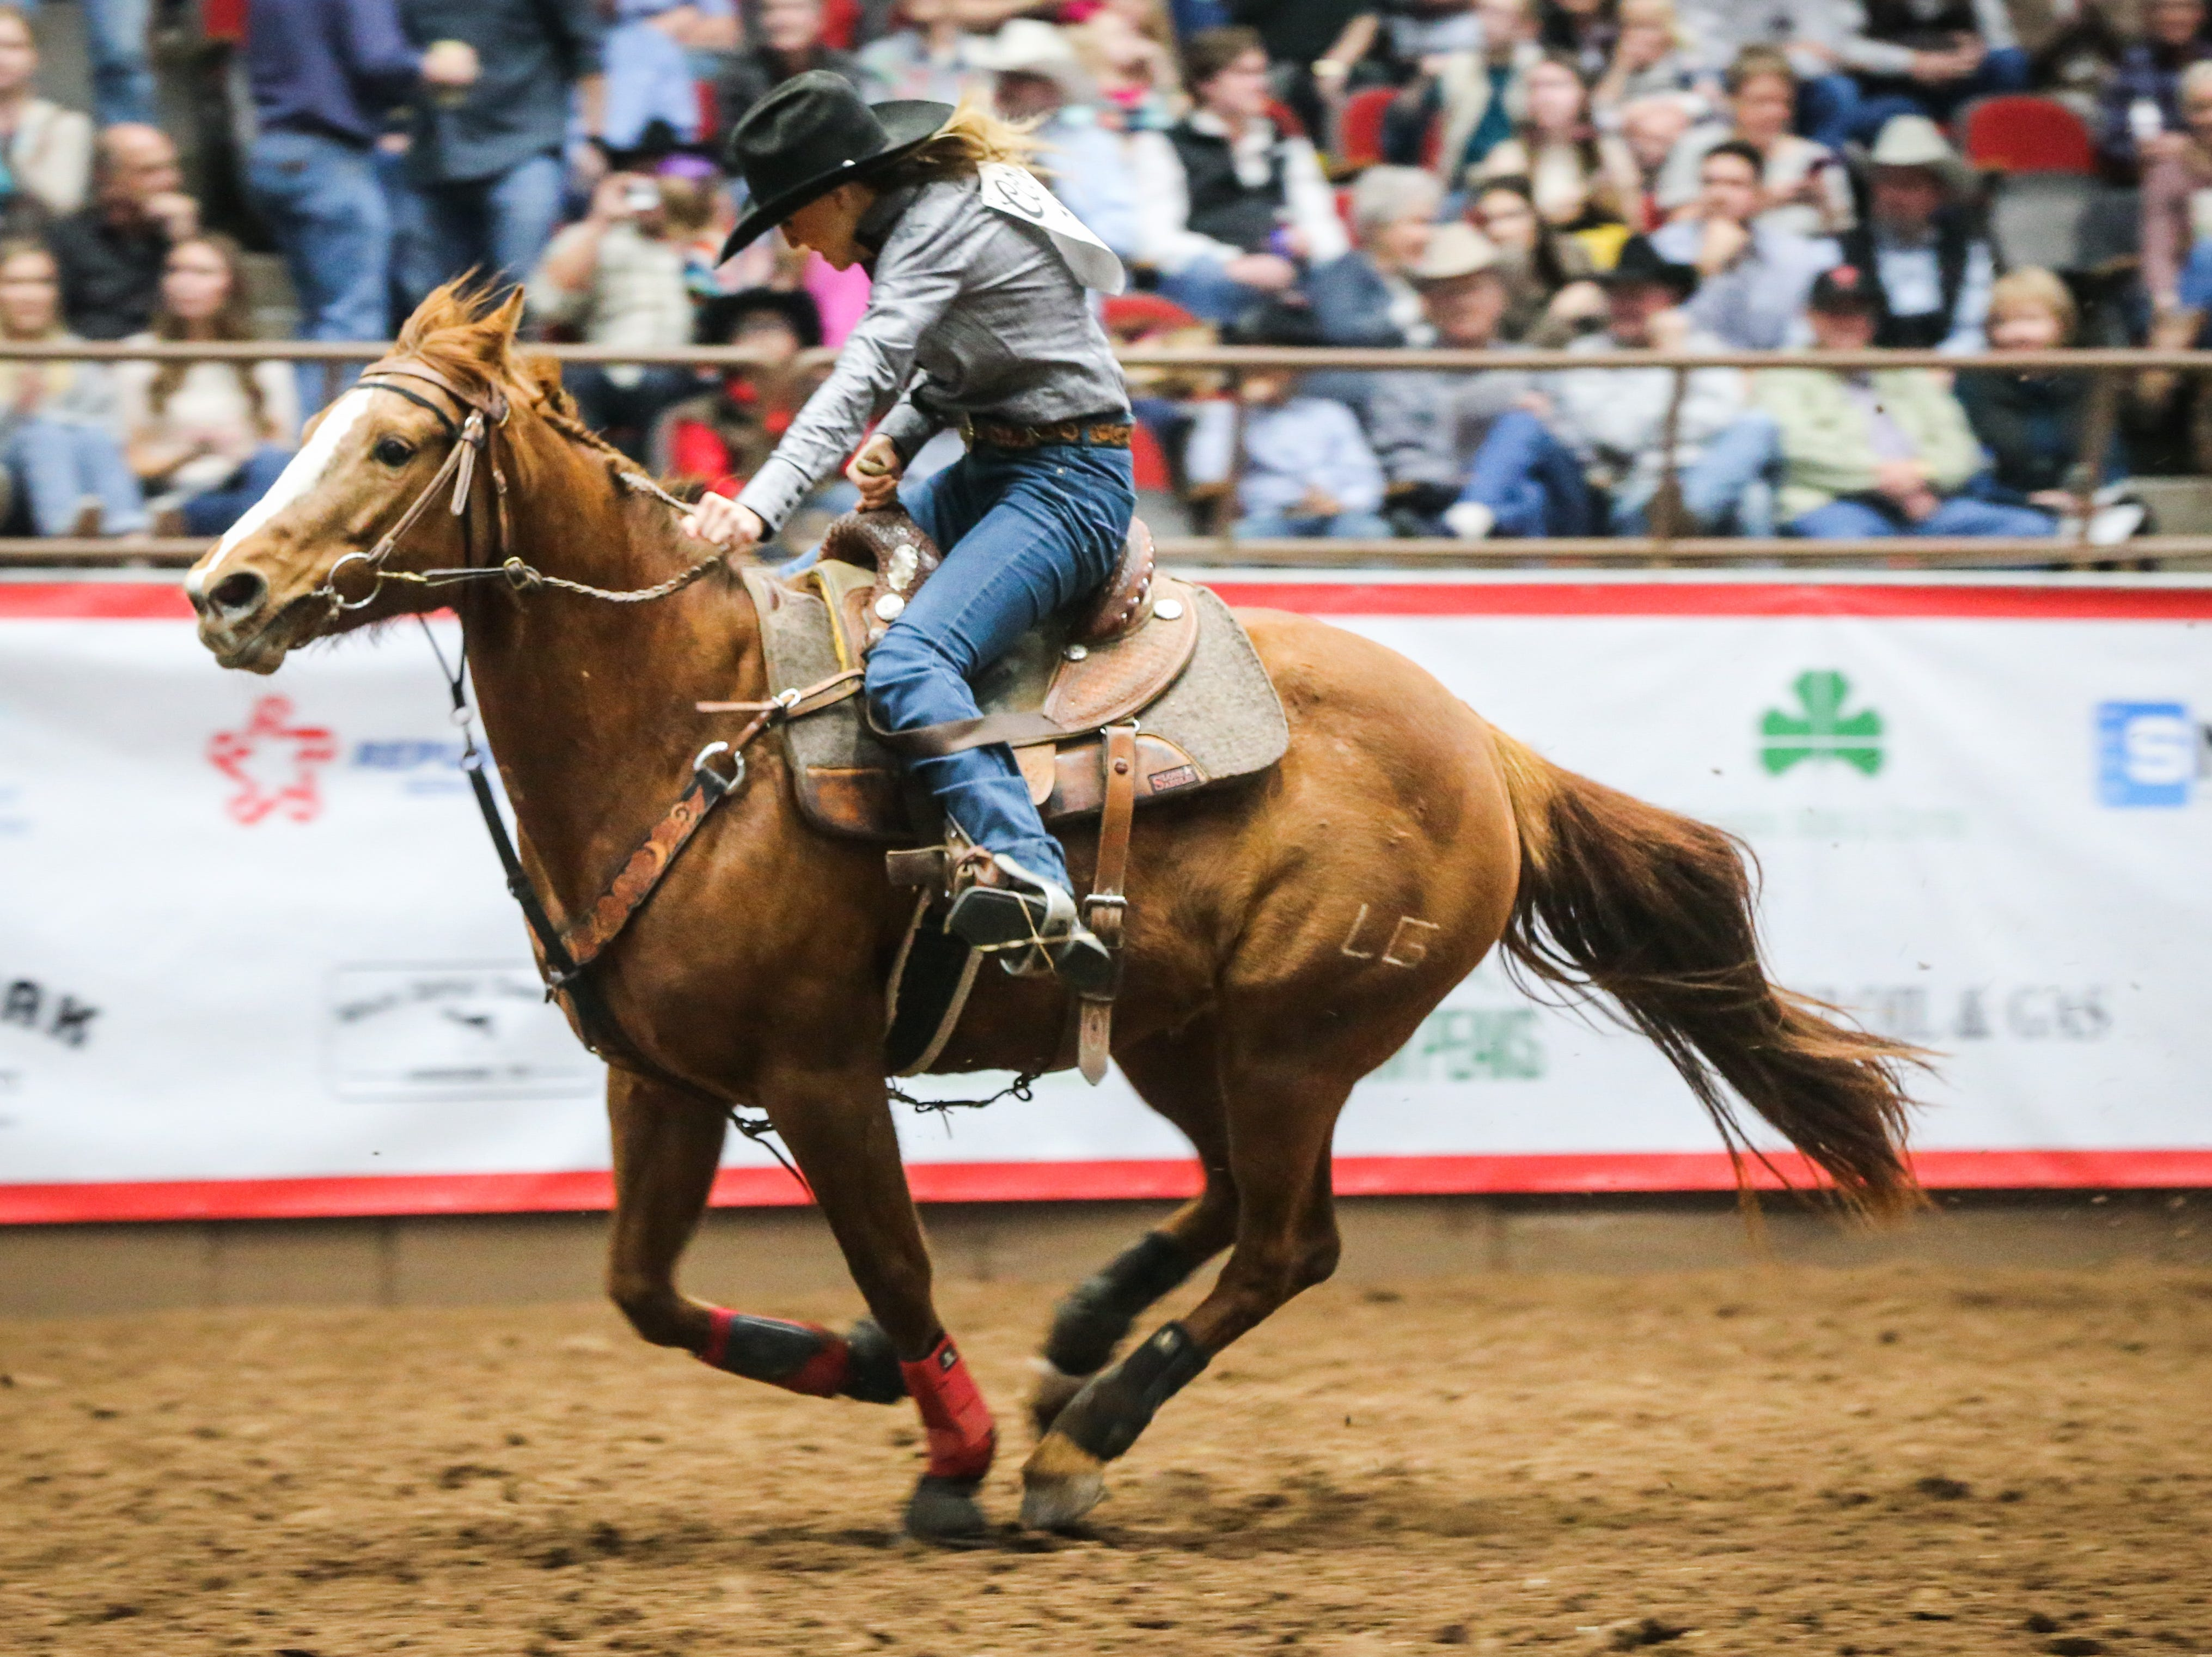 Alex Lang races the barrels during finals of the San Angelo Stock Show & Rodeo Friday, Feb. 15, 2019, at Foster Communications Coliseum.